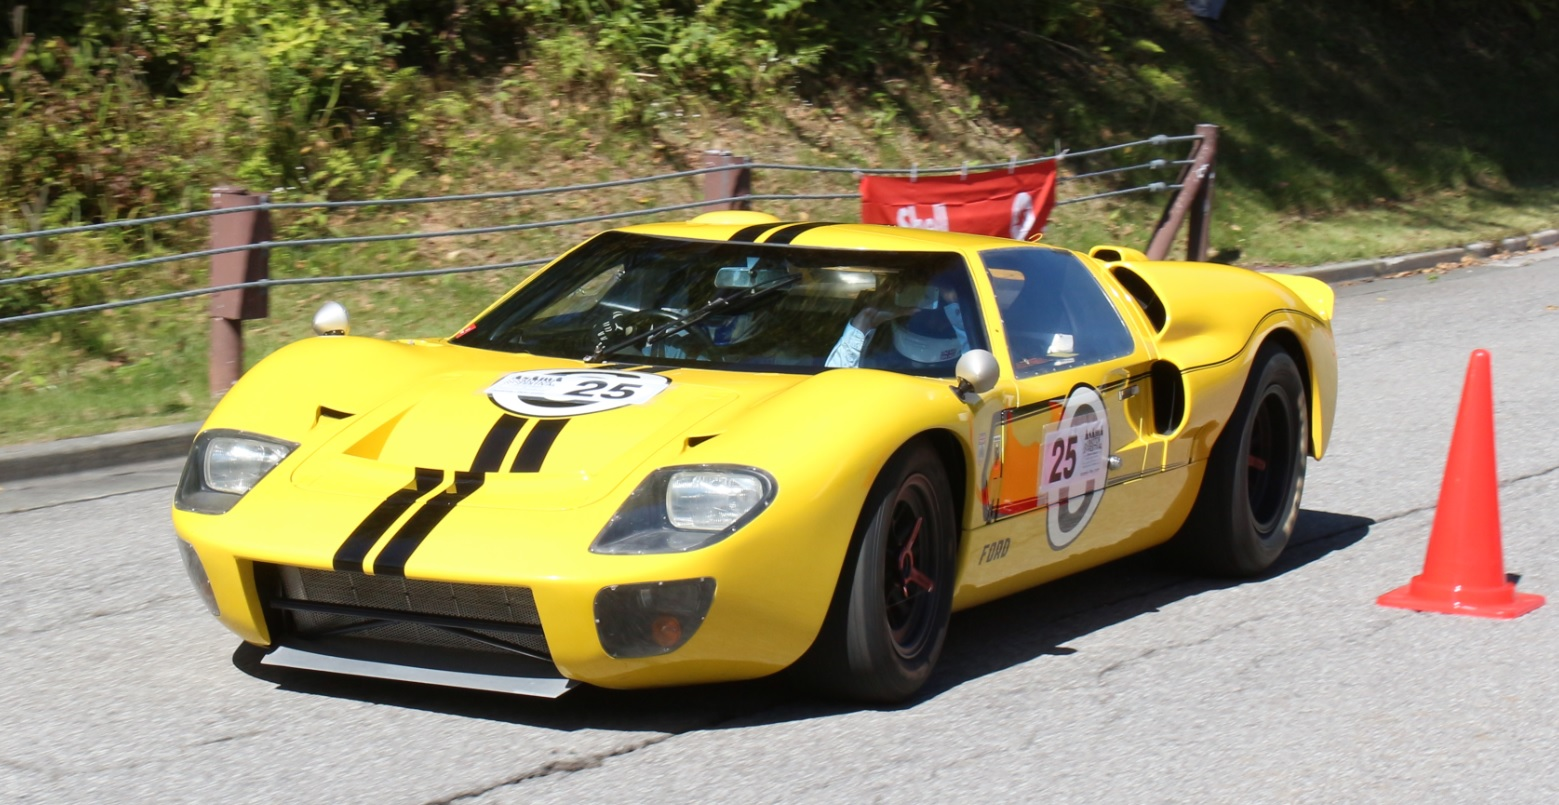 Asama, asama mf, asama motor fes, asama motor festival, FORD, ford gt40, ford gt40 road going car, ford gt40 road going version, fordgt40, GT40, road going car, road going version, フォード, フォード gt40, フォードgt40, 浅間, 浅間mf, 浅間モーターフェス, 浅間モーターフェスティバル